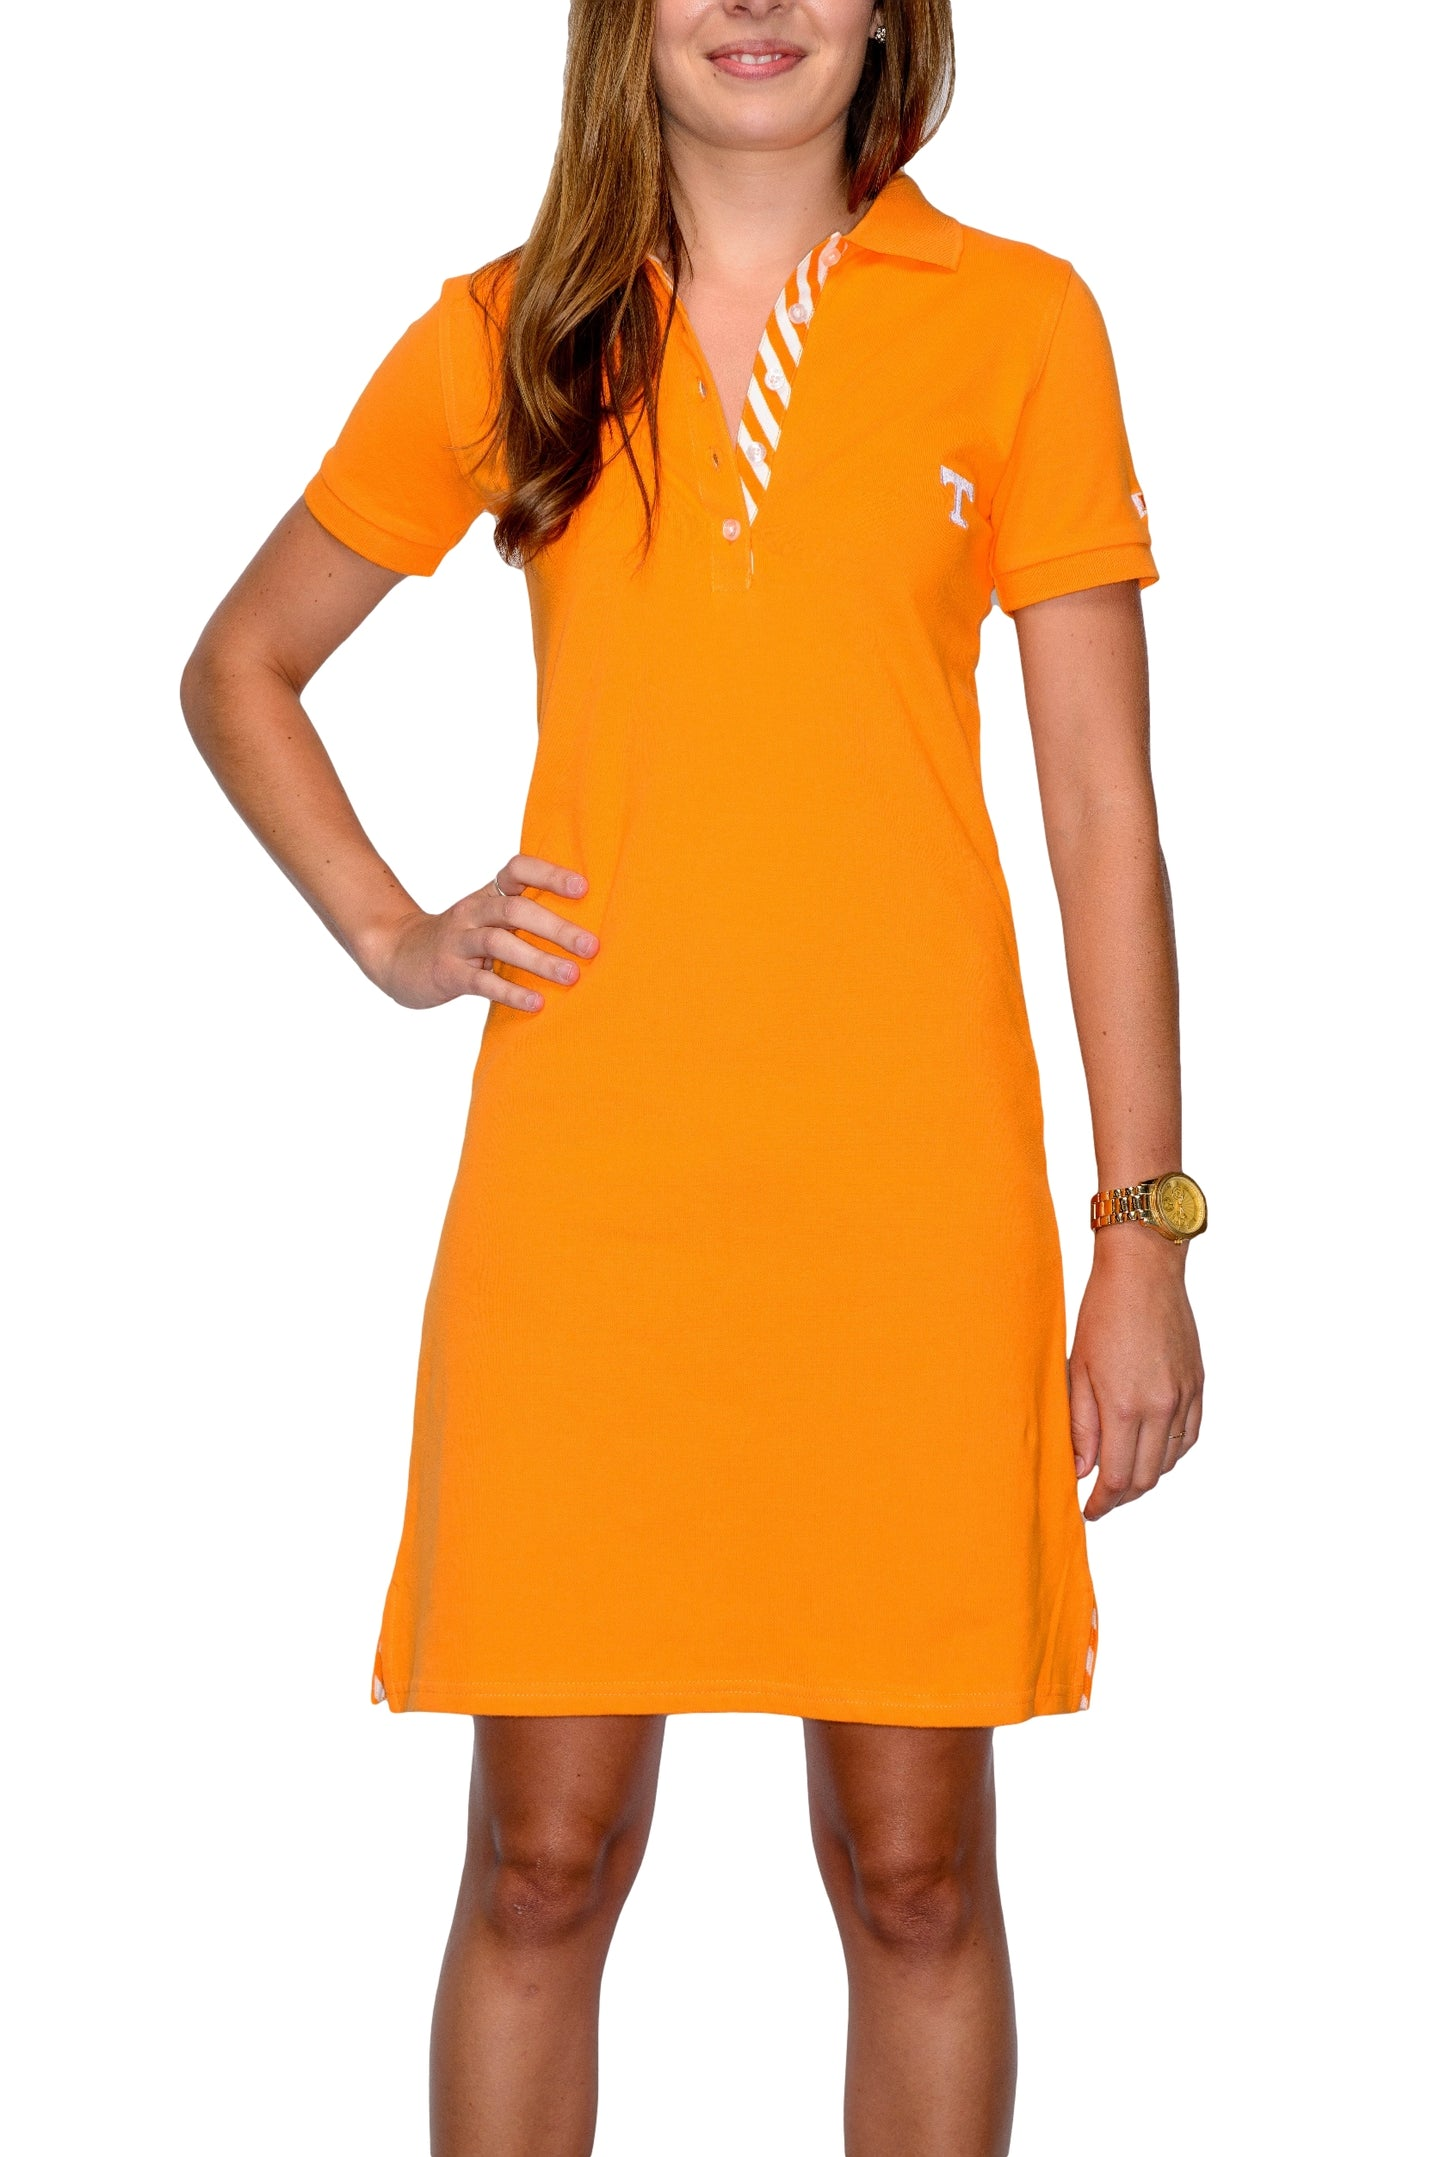 Tennessee Women's Orange Polo Dress